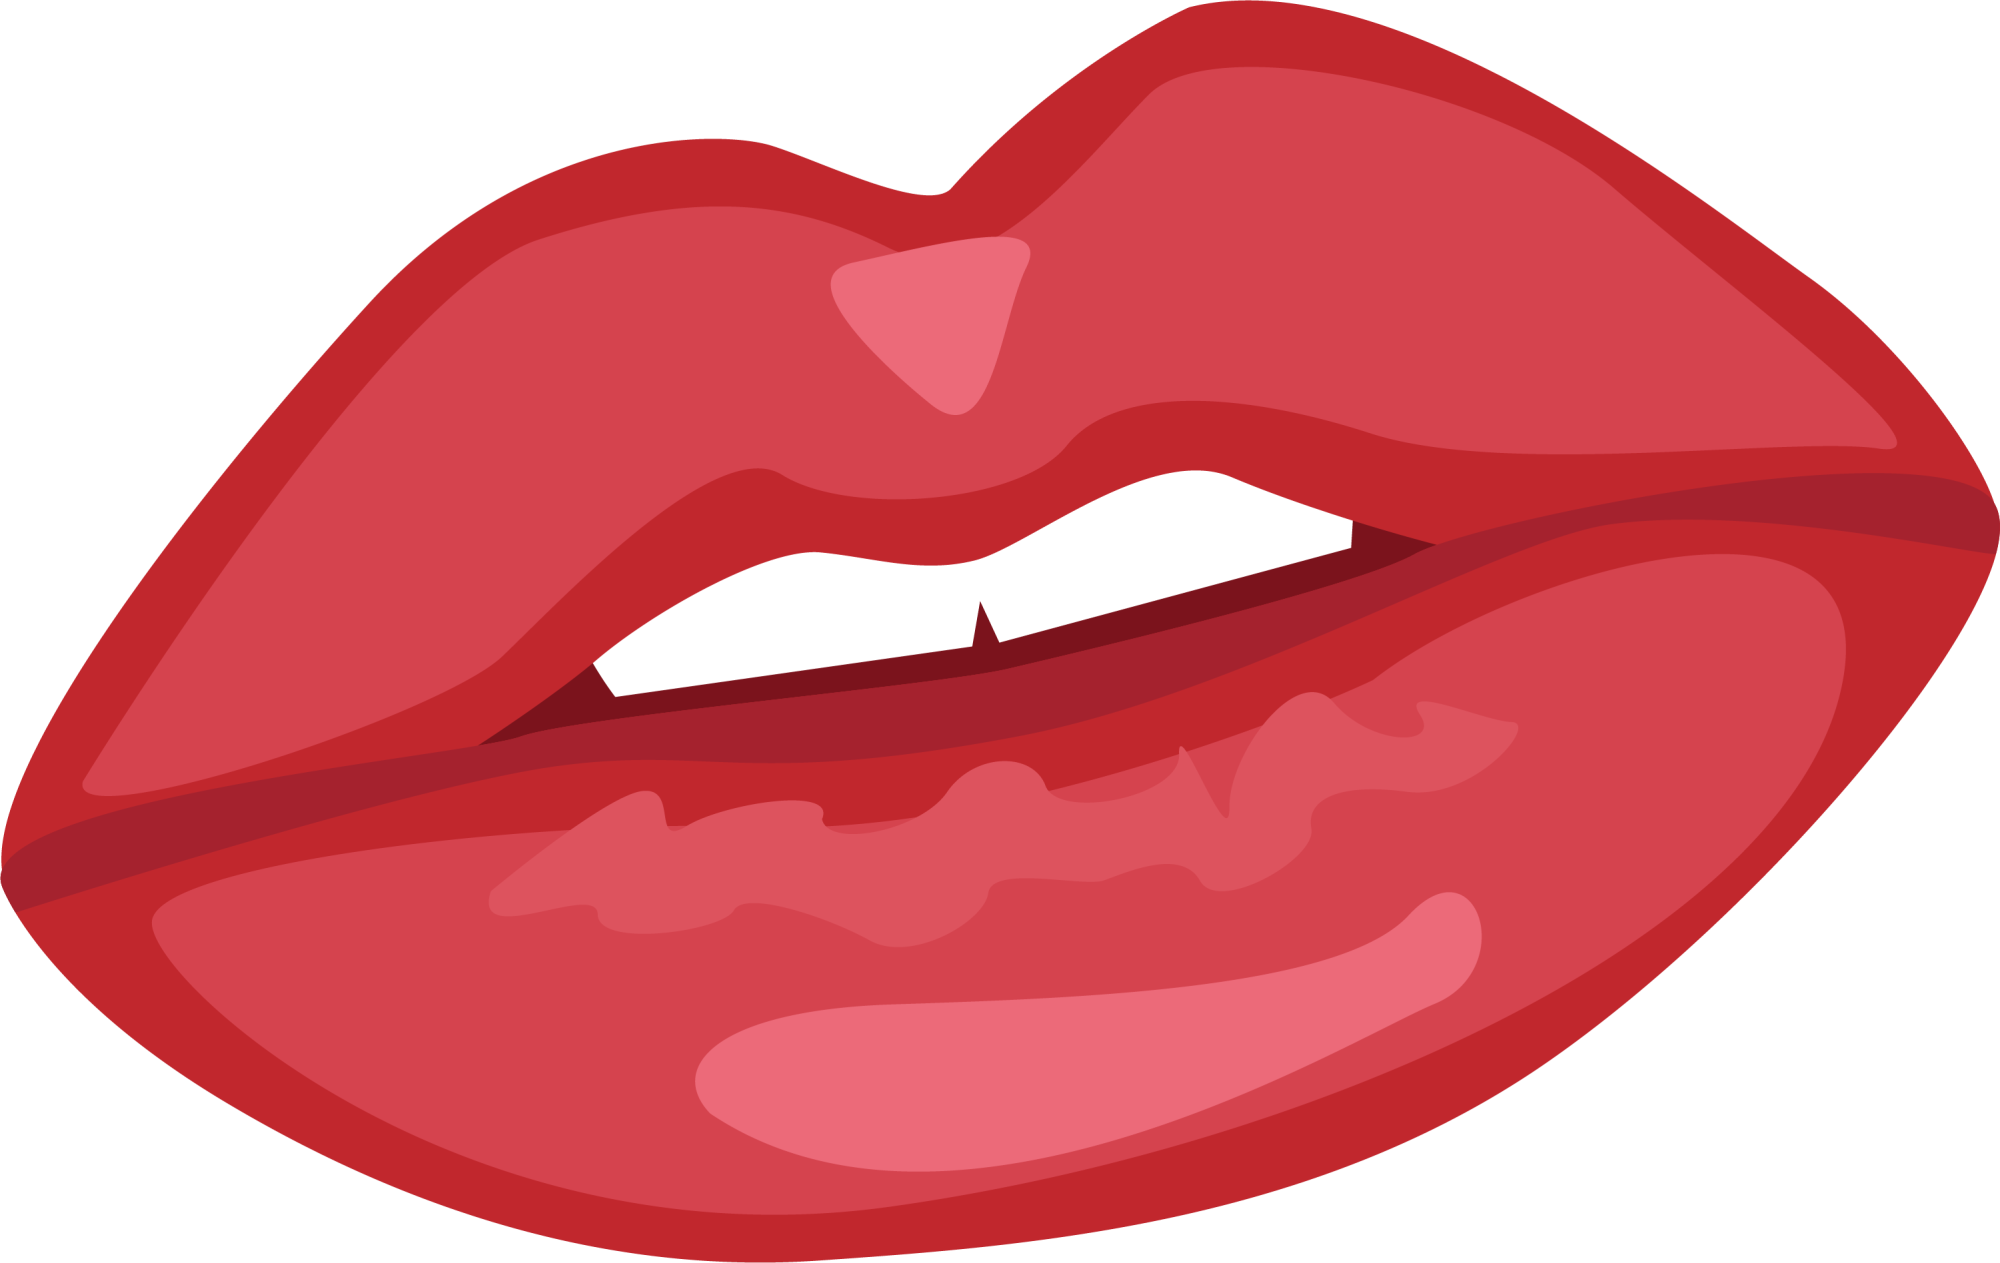 Lip Red Android Application Package Cartoon Lips Lips Gif Png Clipart Full Size Clipart 2011983 Pinclipart